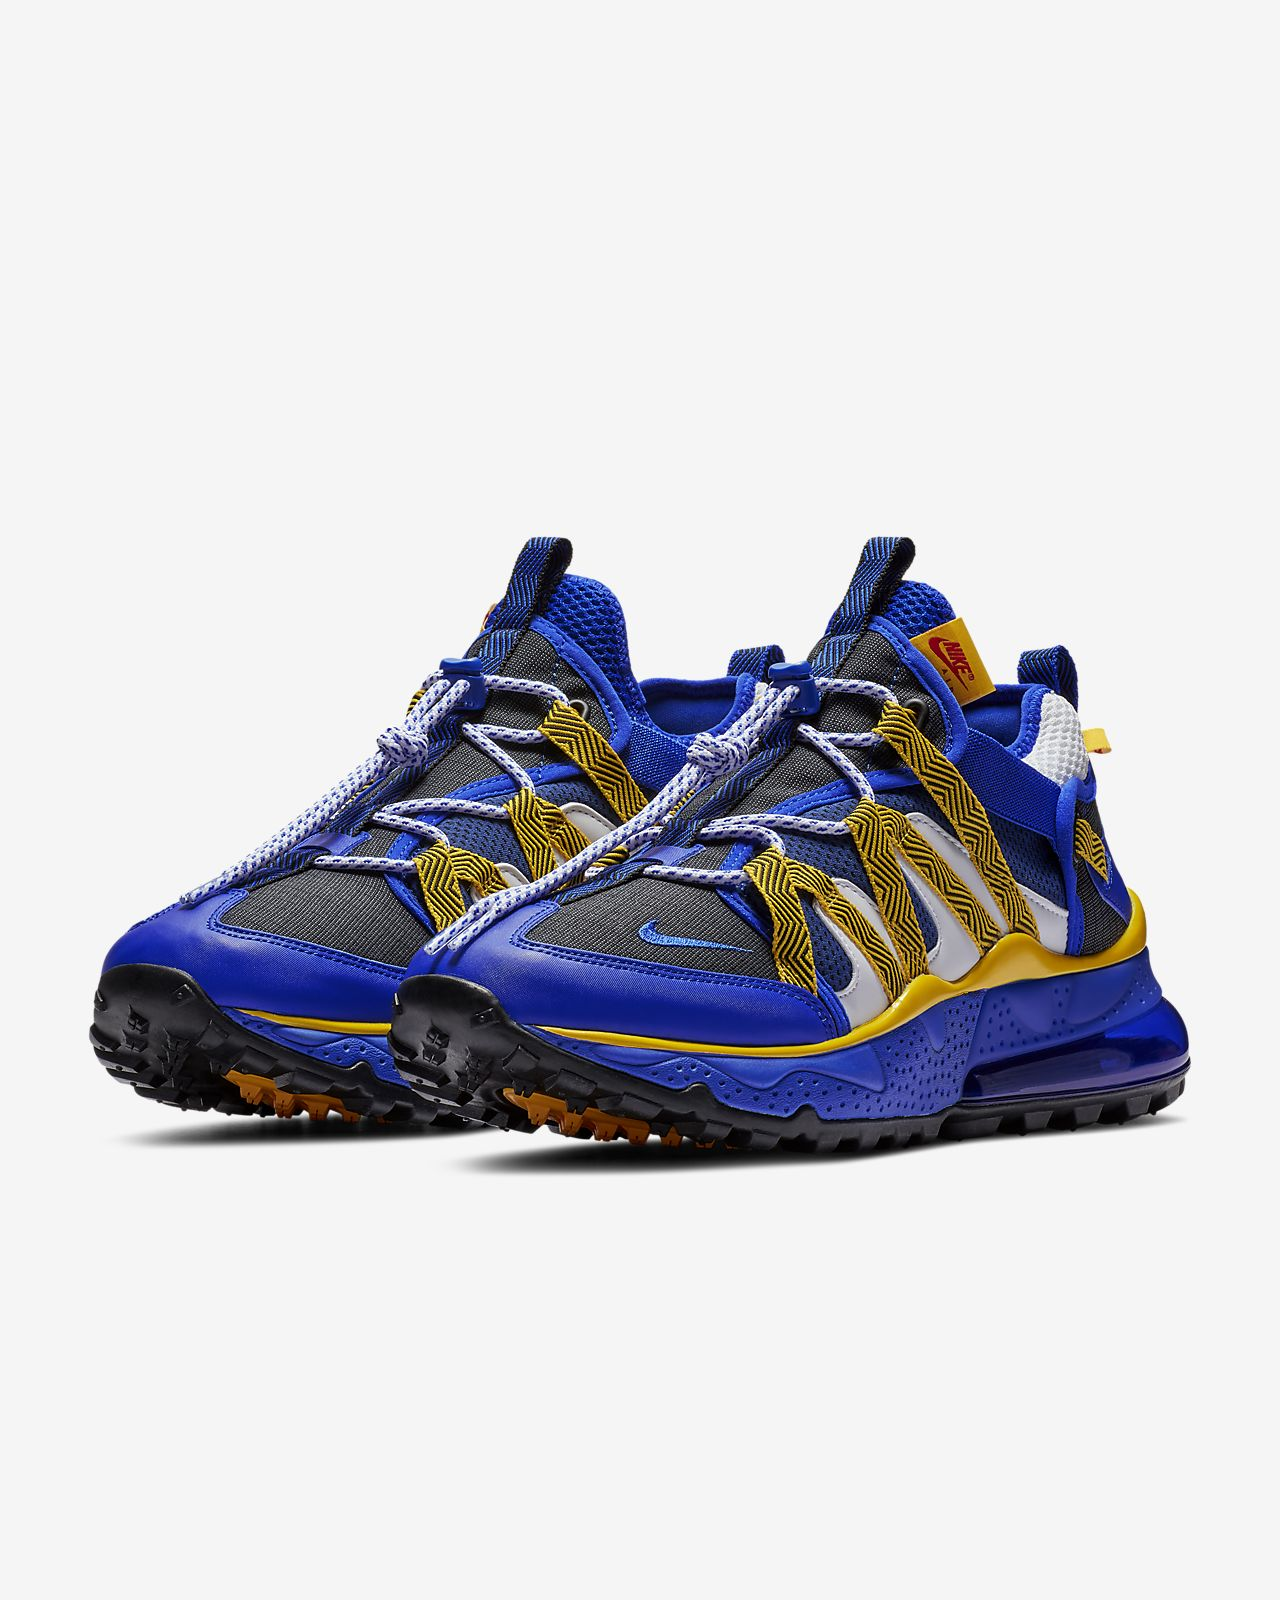 online store 5cee6 20e92 Low Resolution Nike Air Max 270 Bowfin Men s Shoe Nike Air Max 270 Bowfin  Men s Shoe